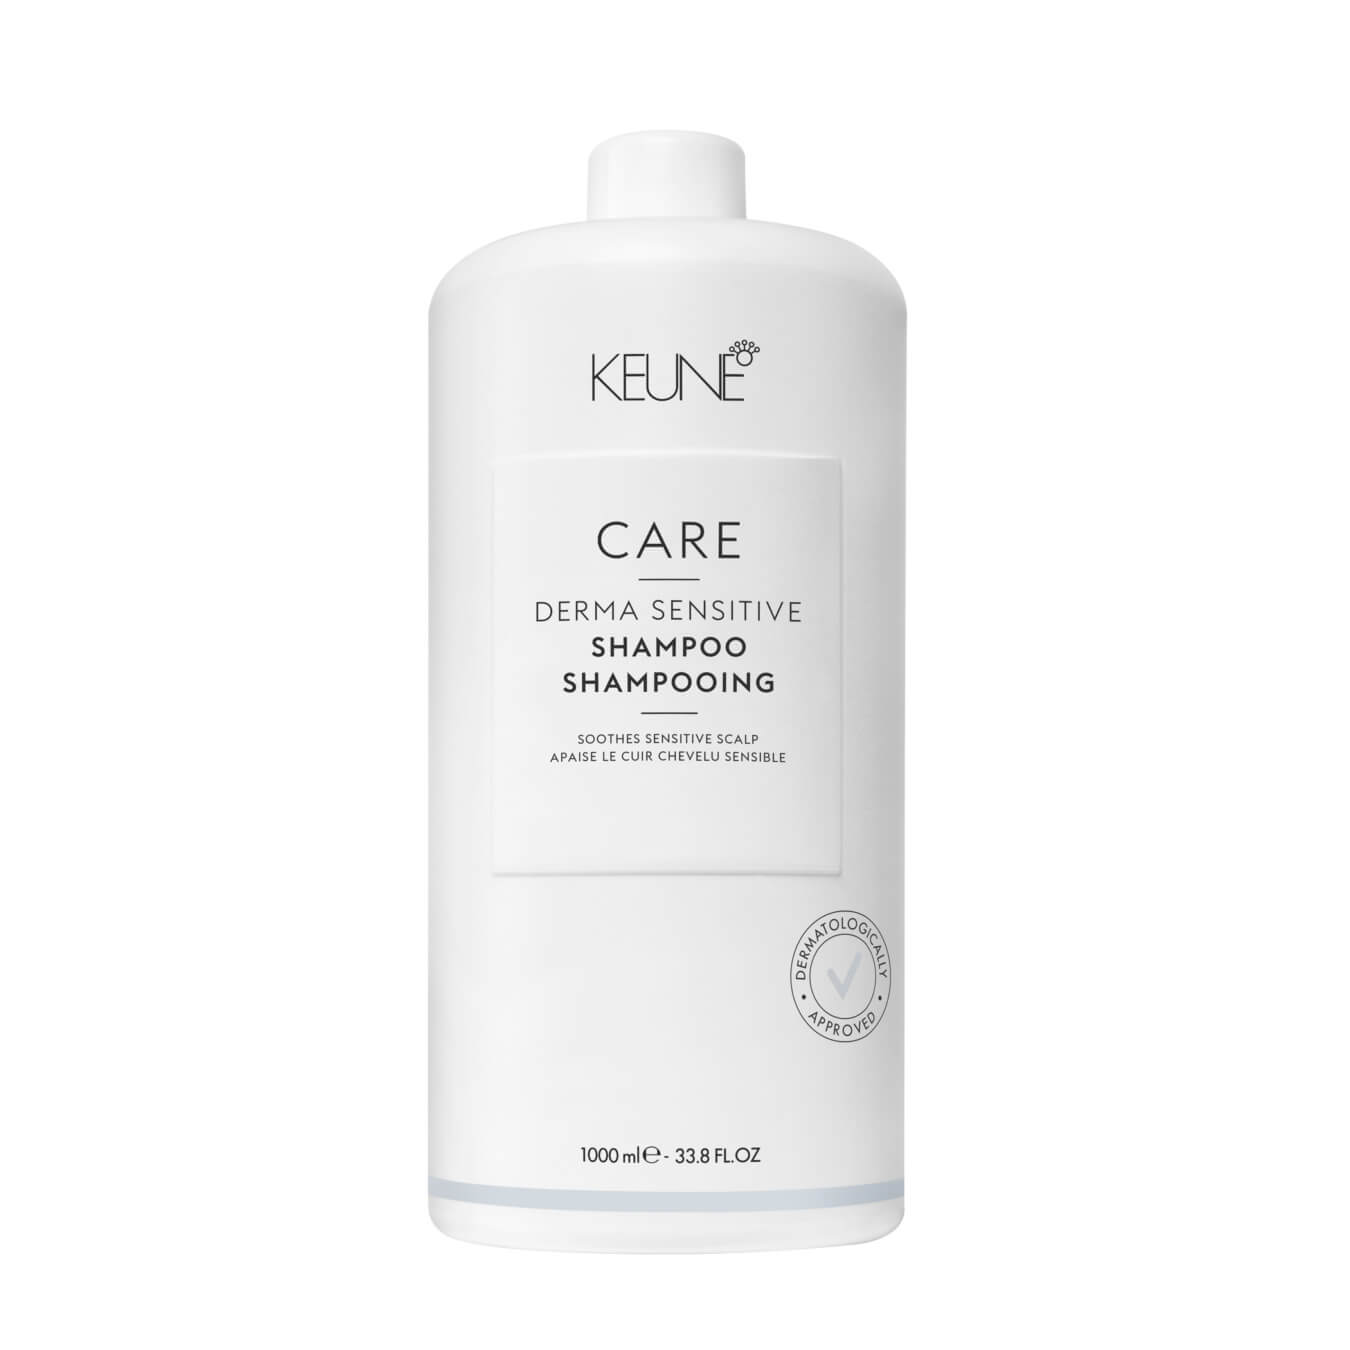 Koop Keune Care Derma Sensitive Shampoo 1000ml